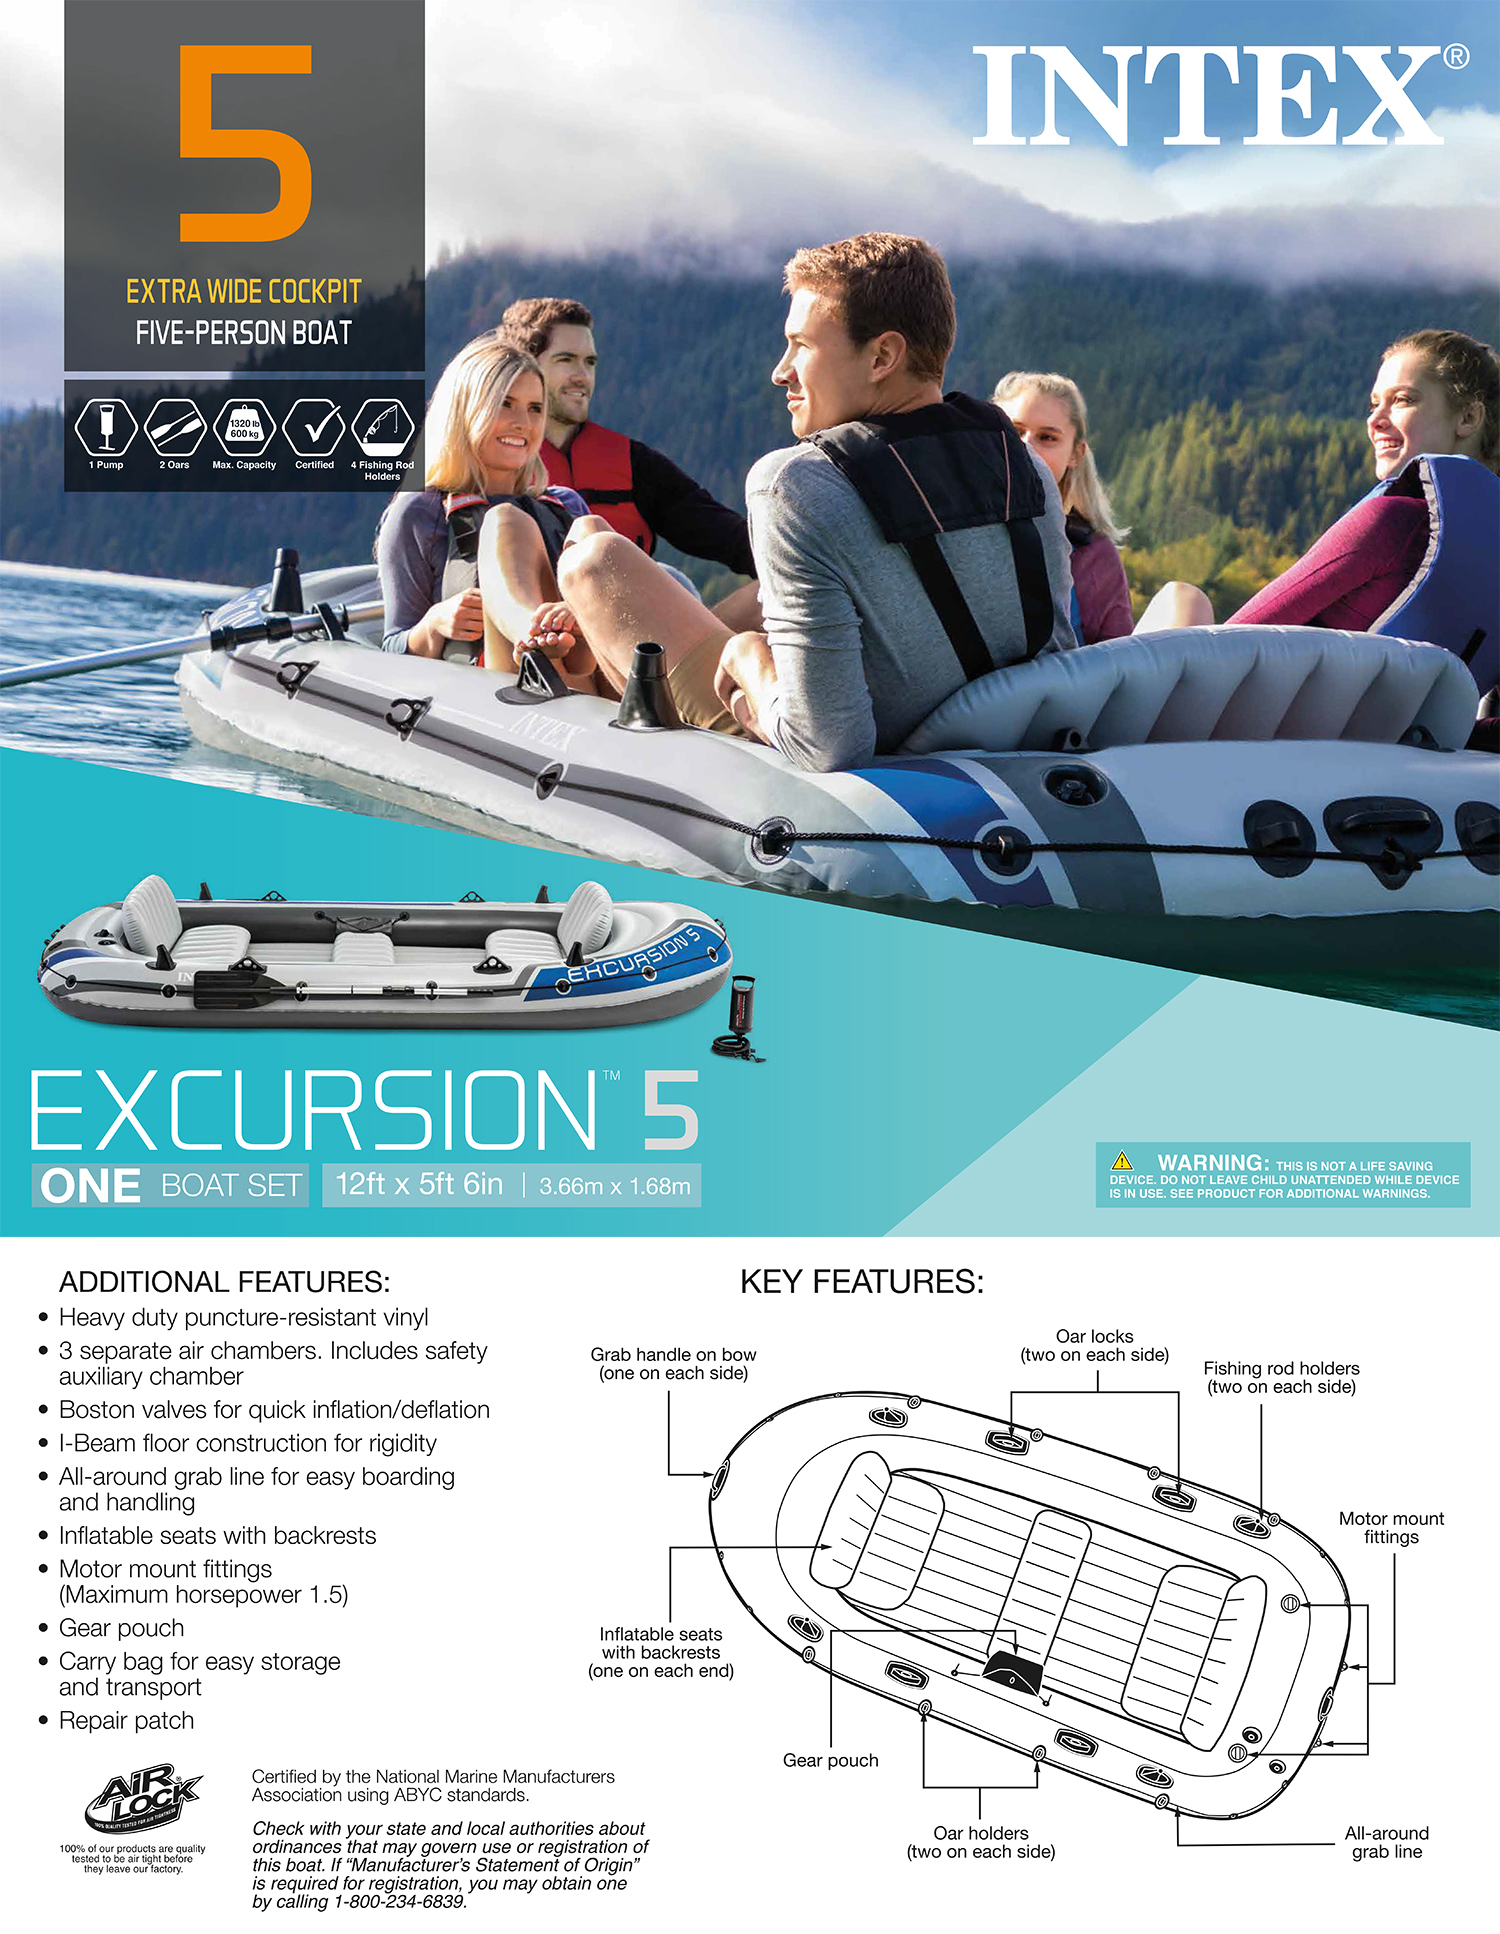 Excursion 5 Boat Set